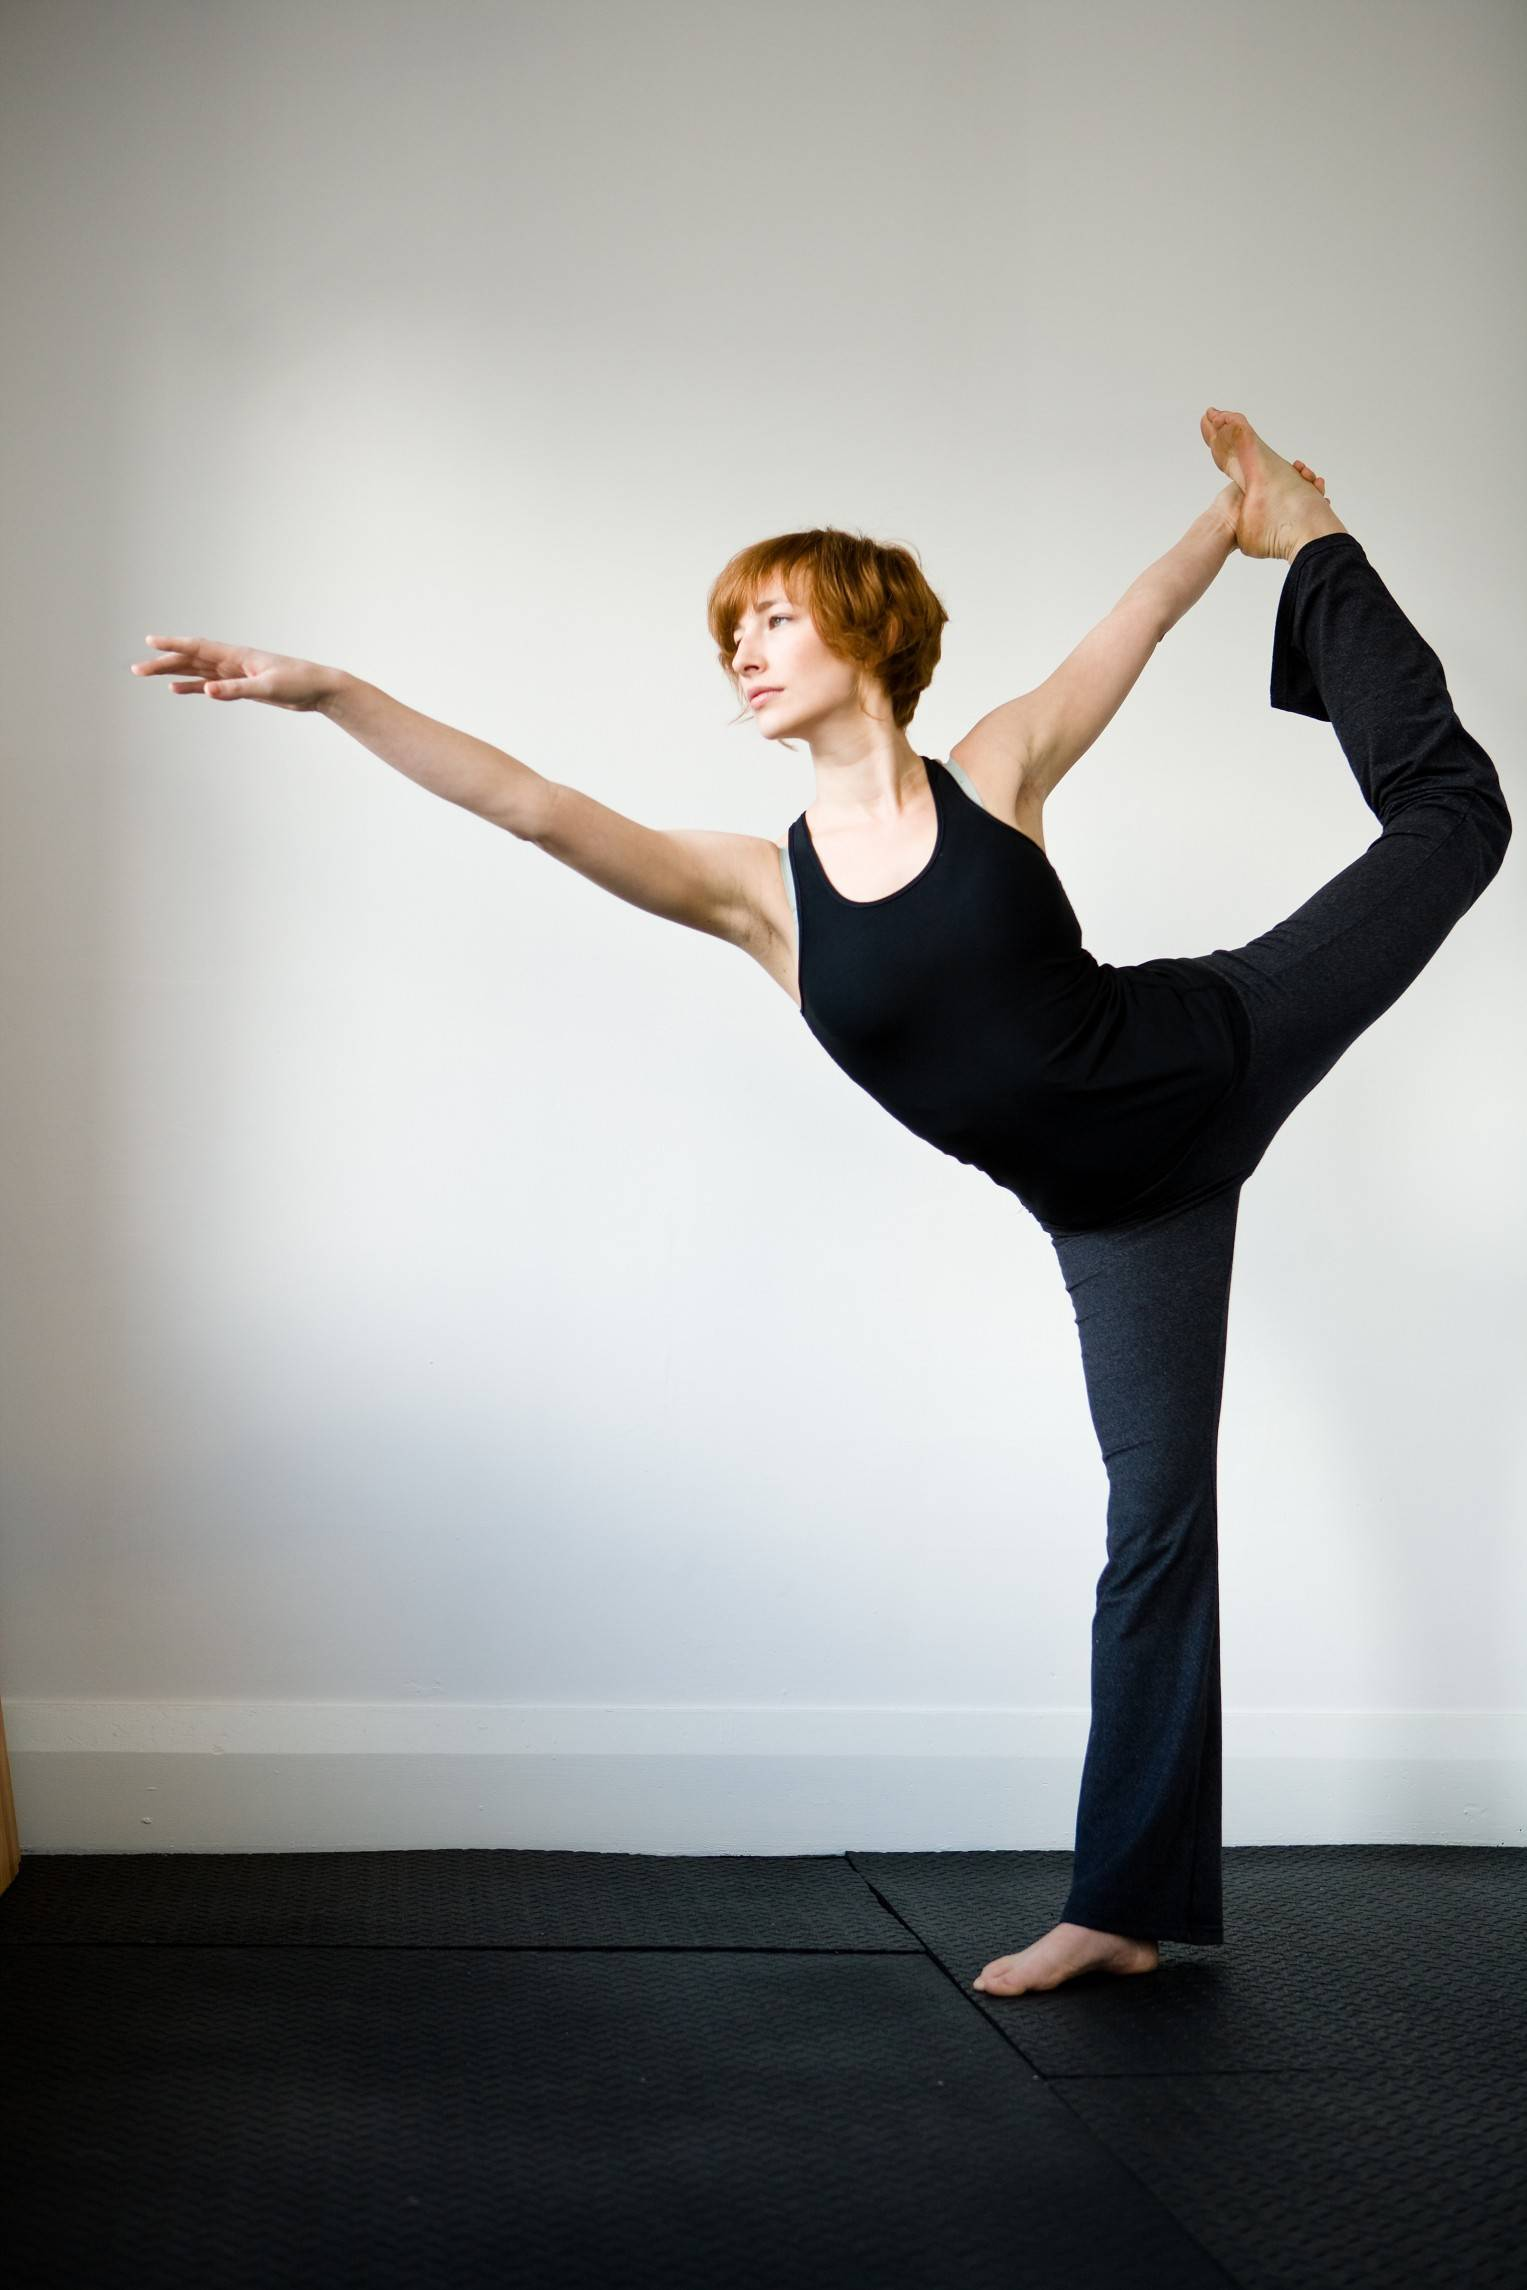 Yoga remains in the top 10 fitness trends, while Pilates has seen a dip in popularity.